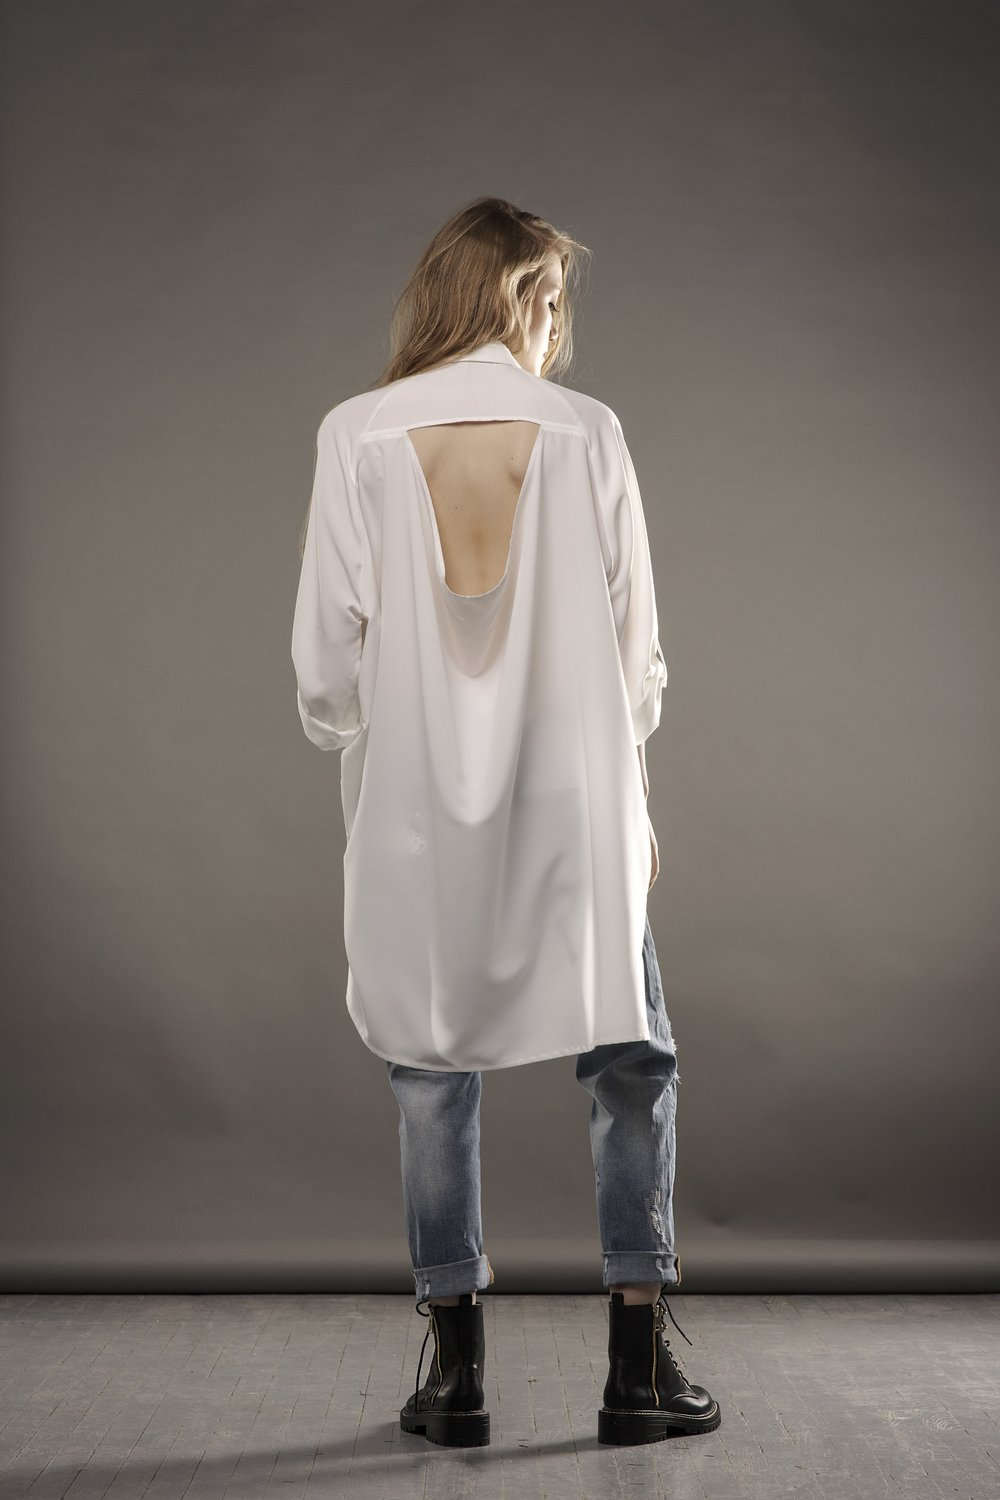 new-white-shirt-with-detail-on-back-580ce848117ca.jpg